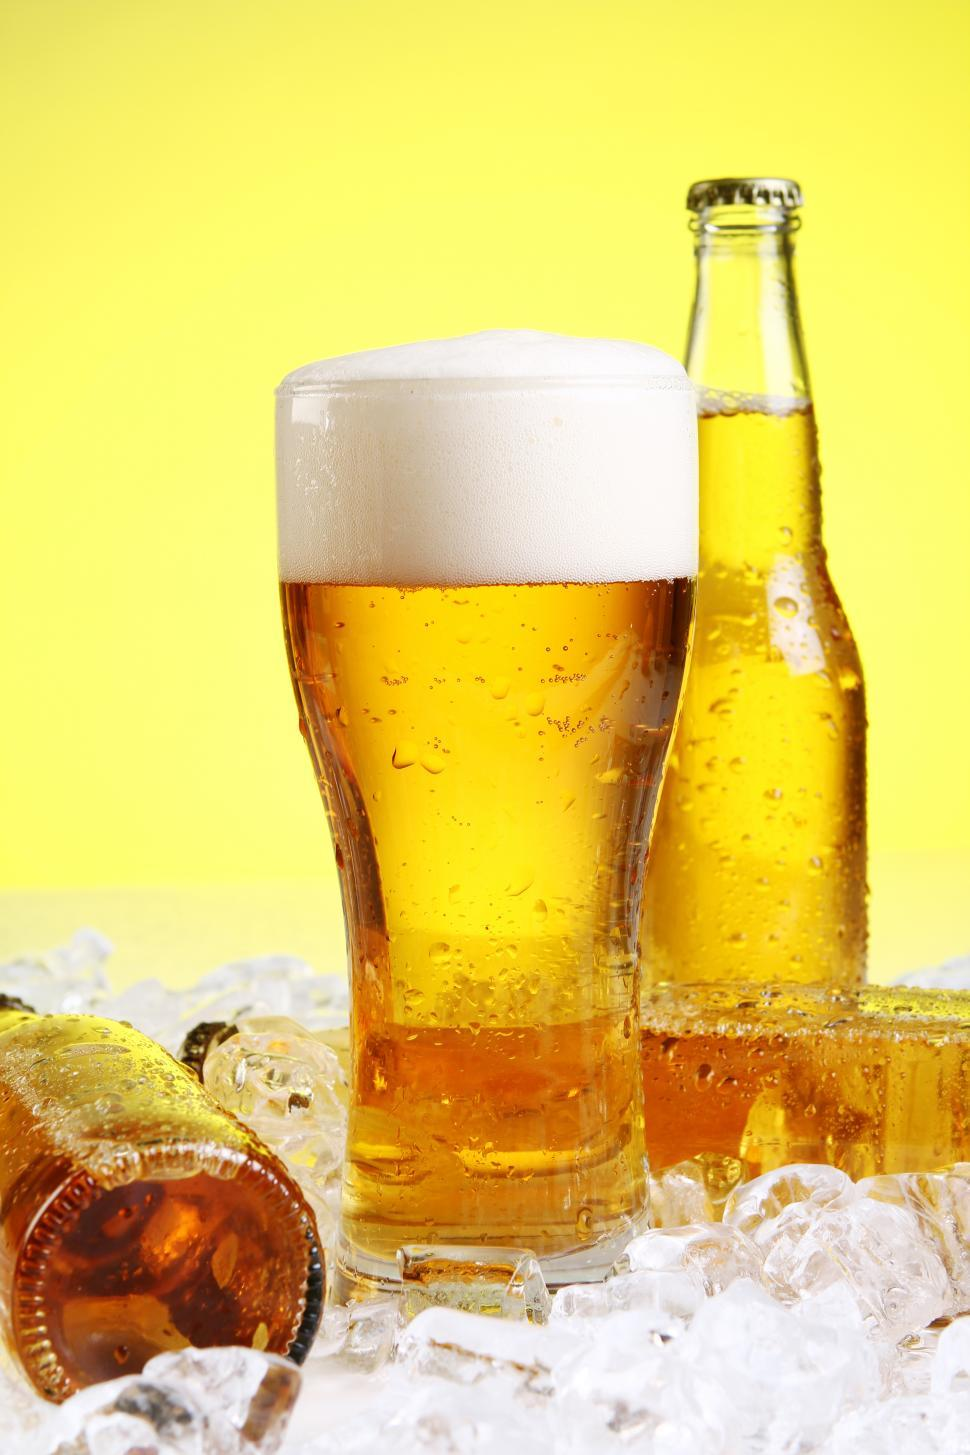 Download Free Stock HD Photo of Glass of beer with foam on yellow background Online